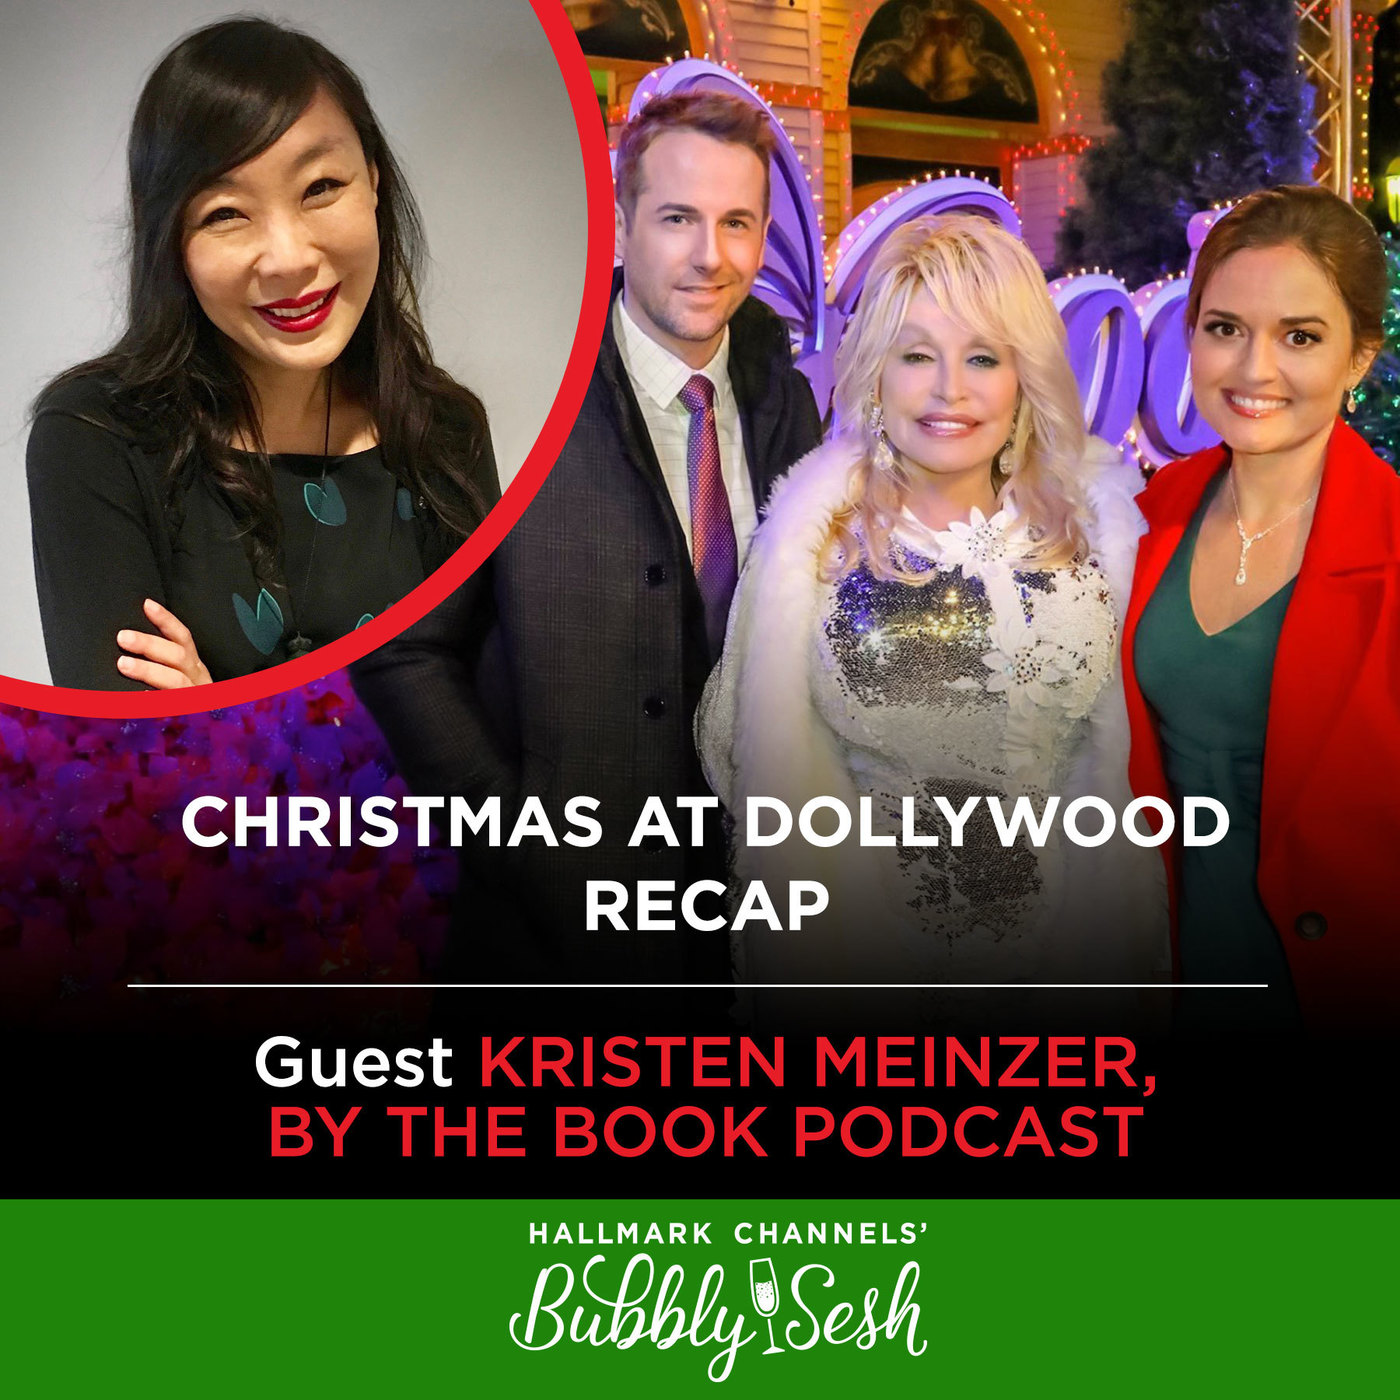 Christmas at Dollywood Recap with Kristen Meinzer